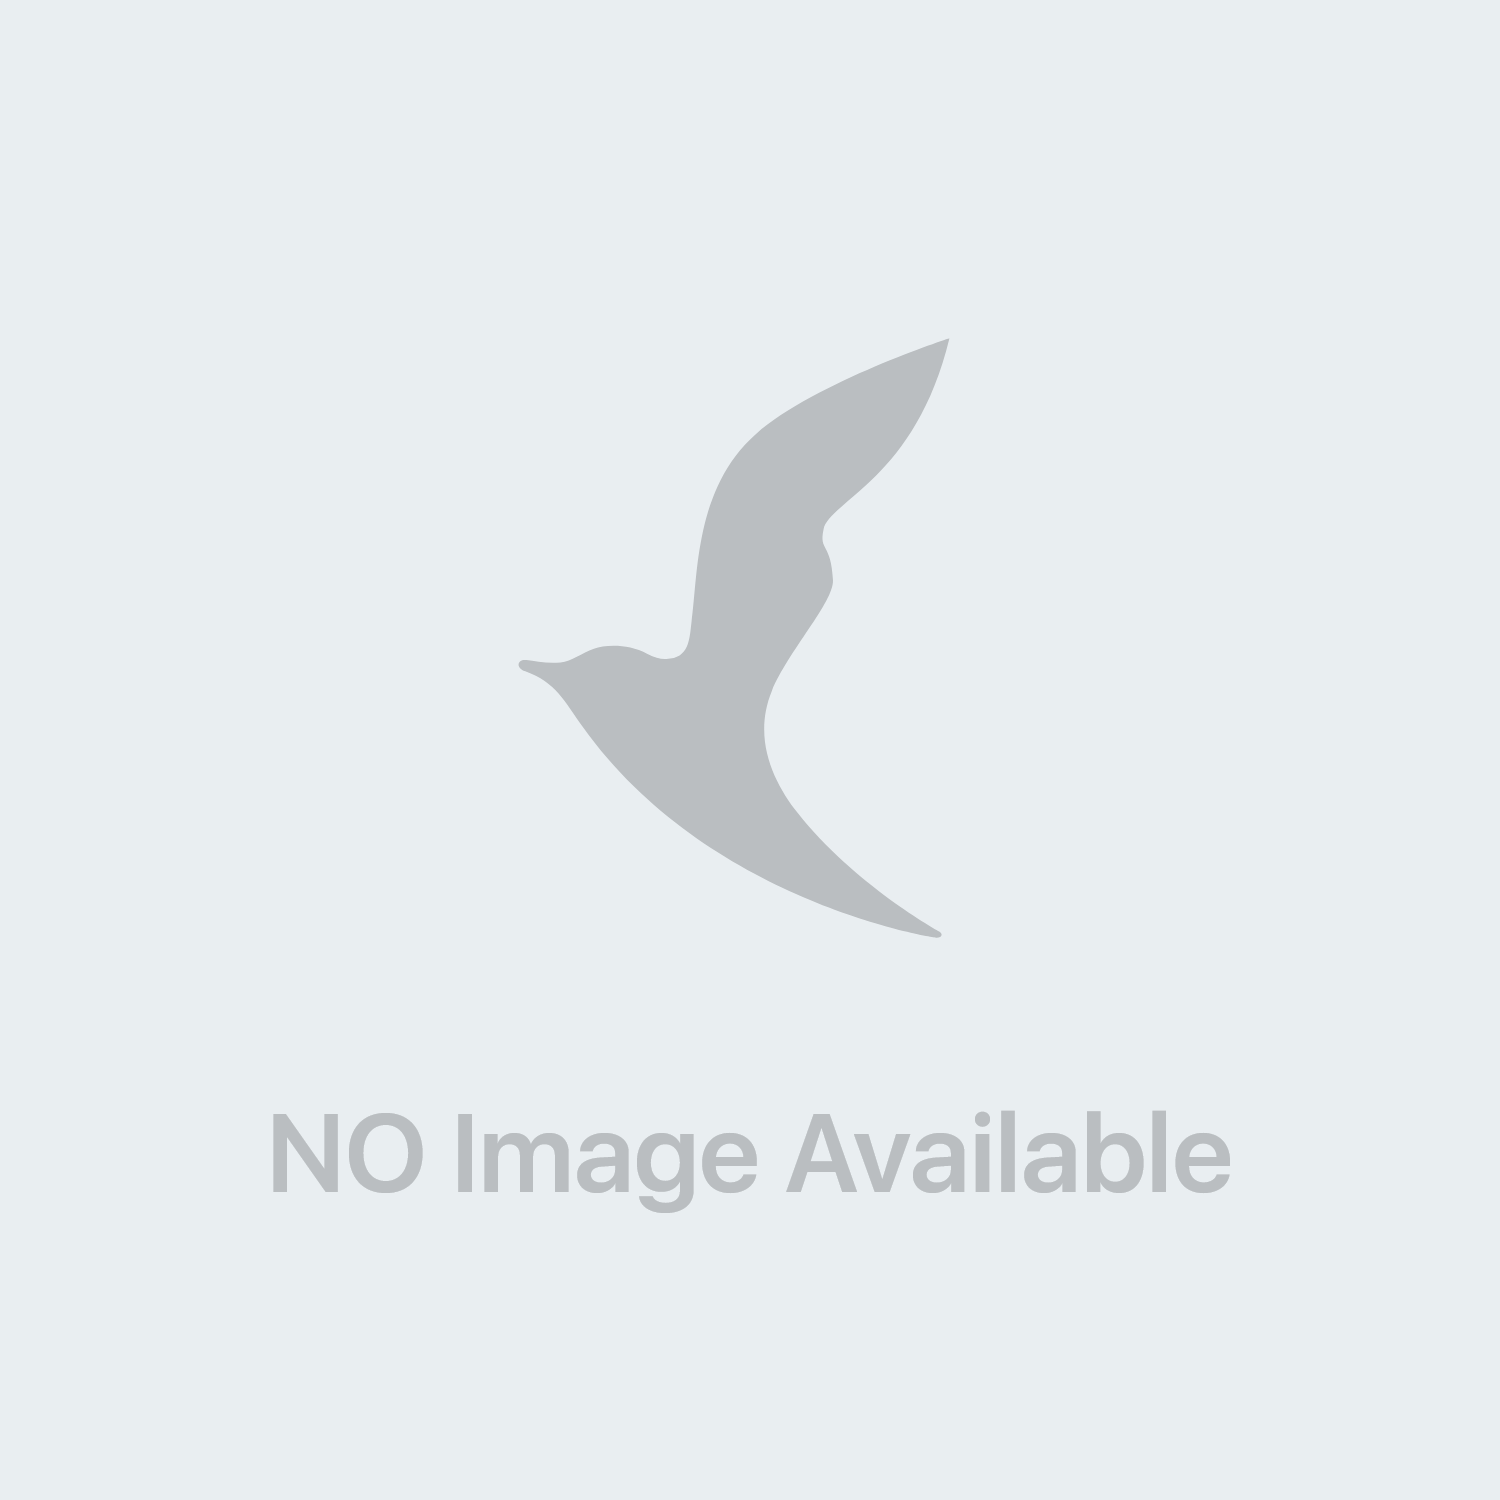 Onilaq 5% Smalto Medicato Per Unghie Antimicotico Con Tappo Applicatore 2,5 ml